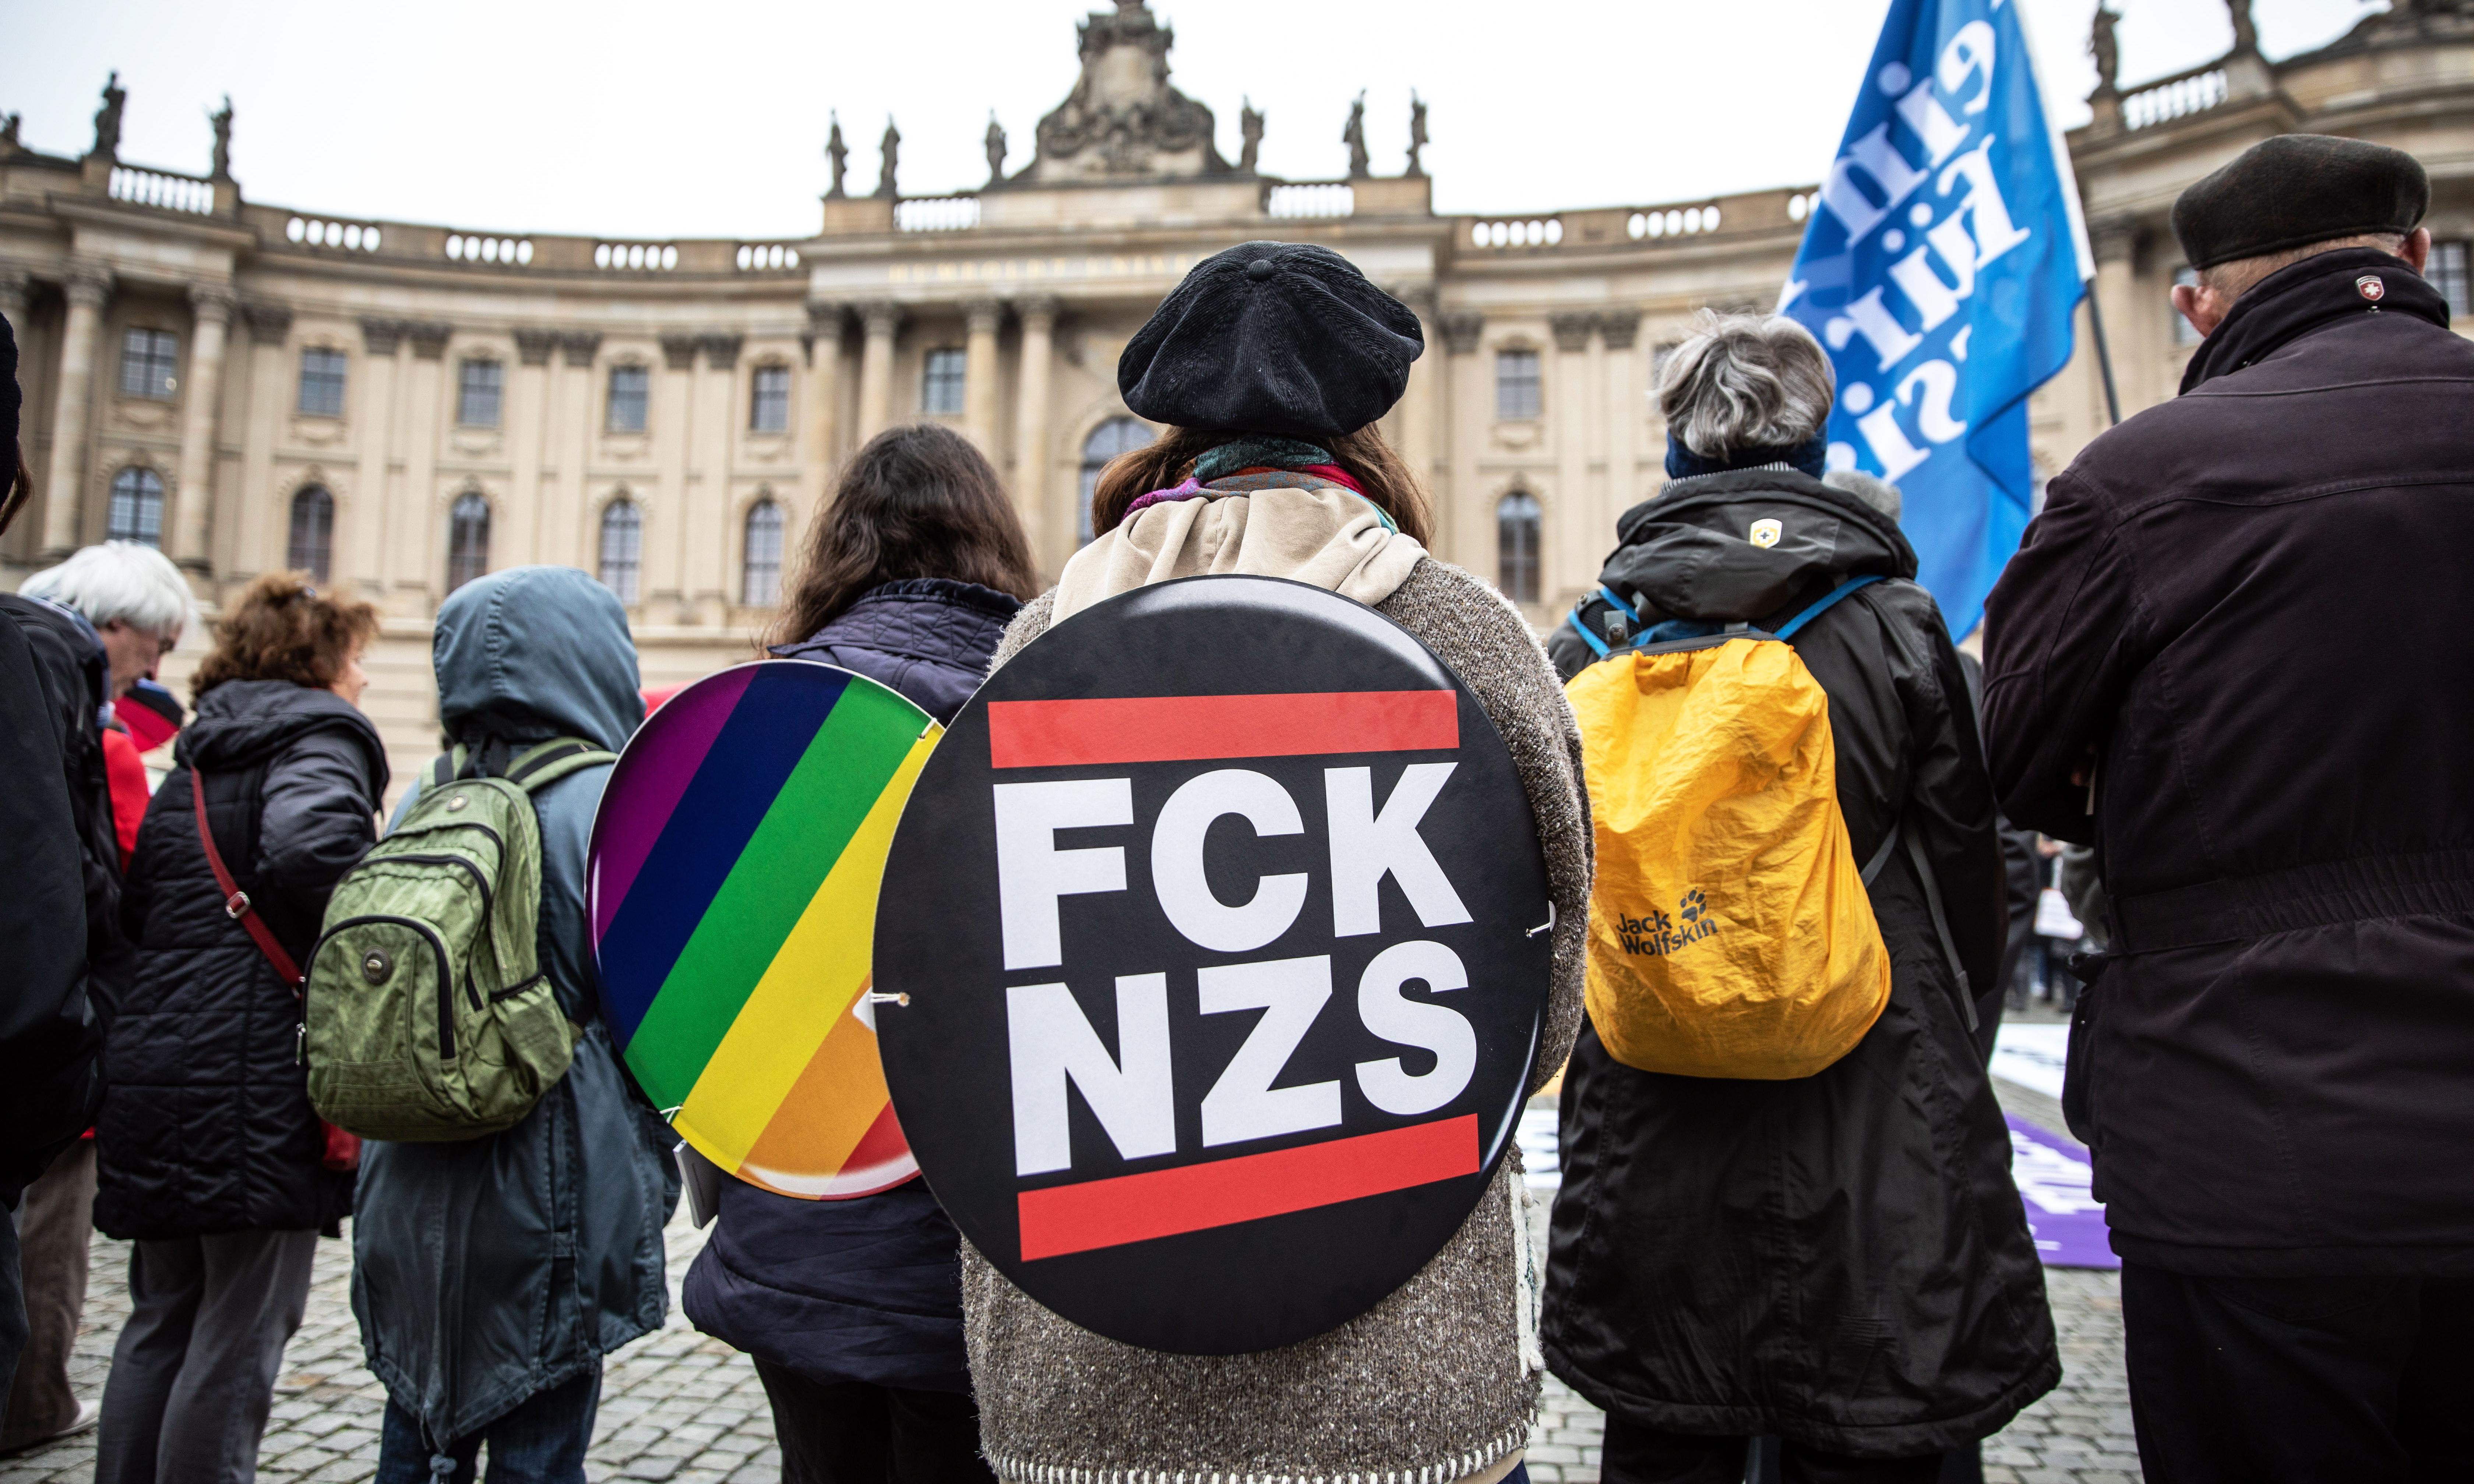 Neo-Nazi terror group threatened 'to find and harm' US activist in Germany